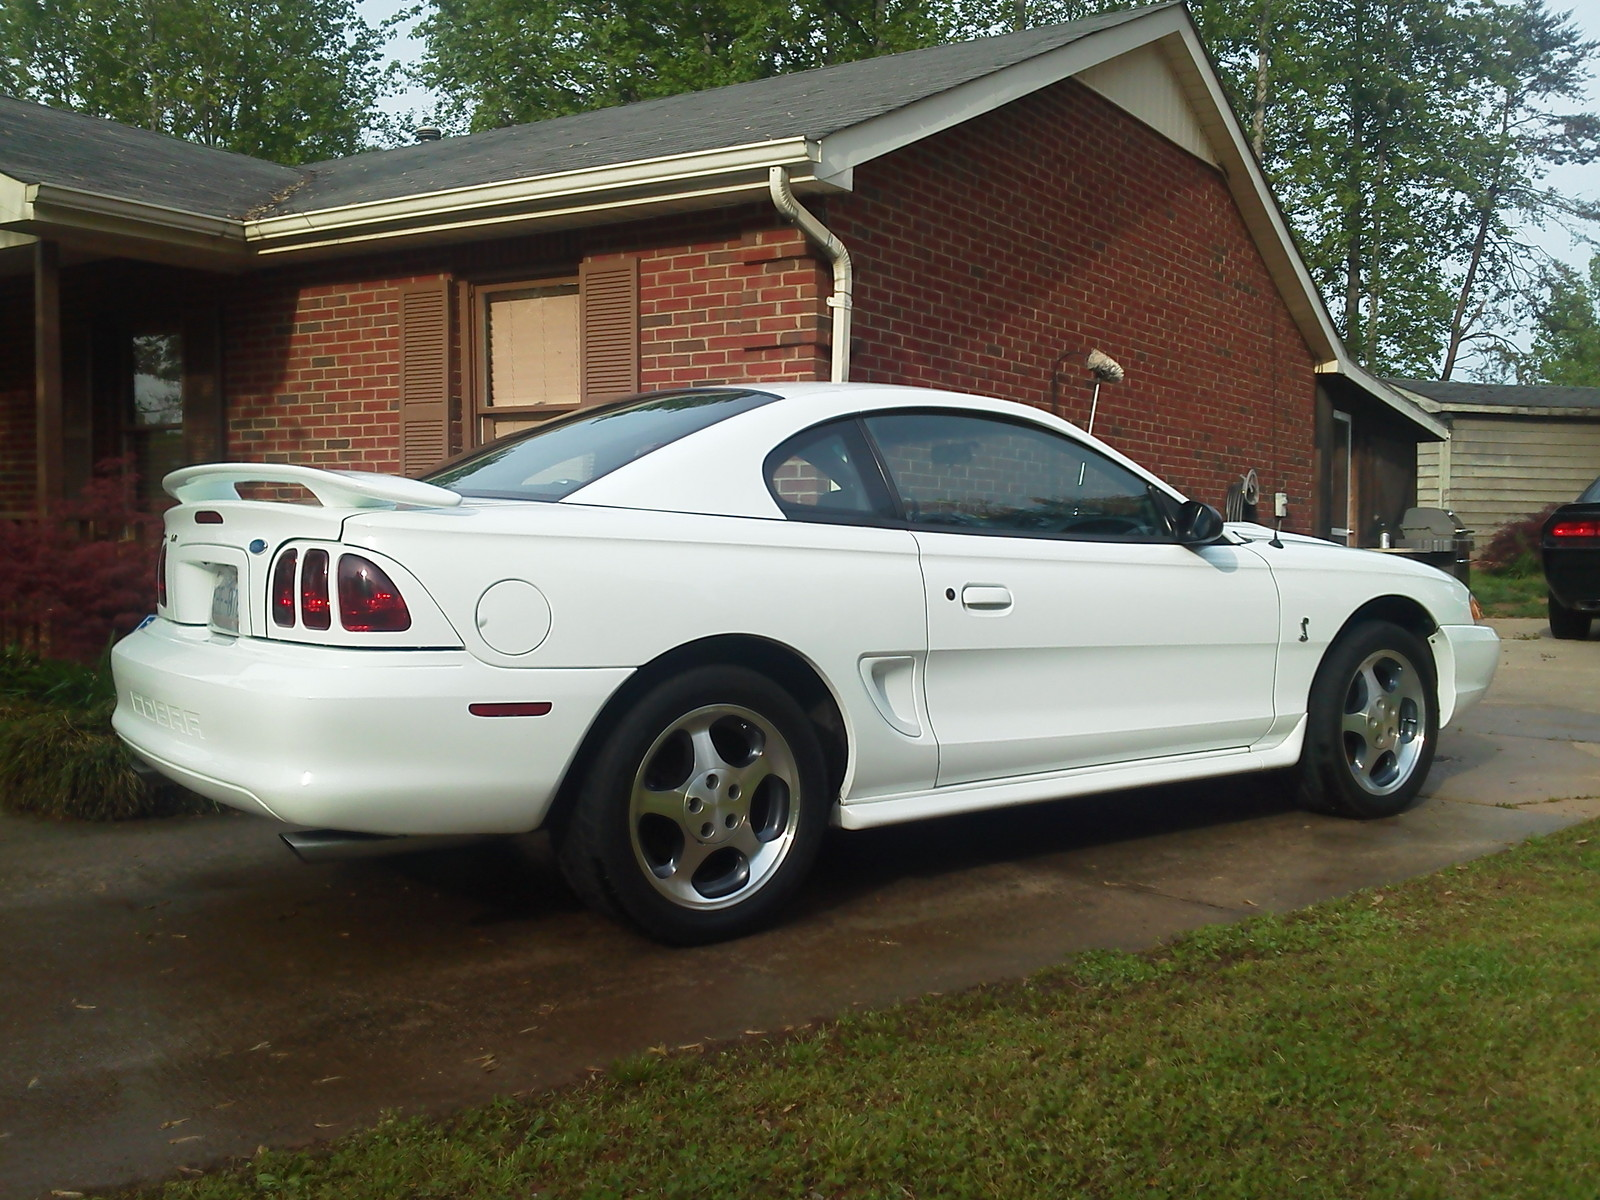 White 1997 Ford Mustang Cobra